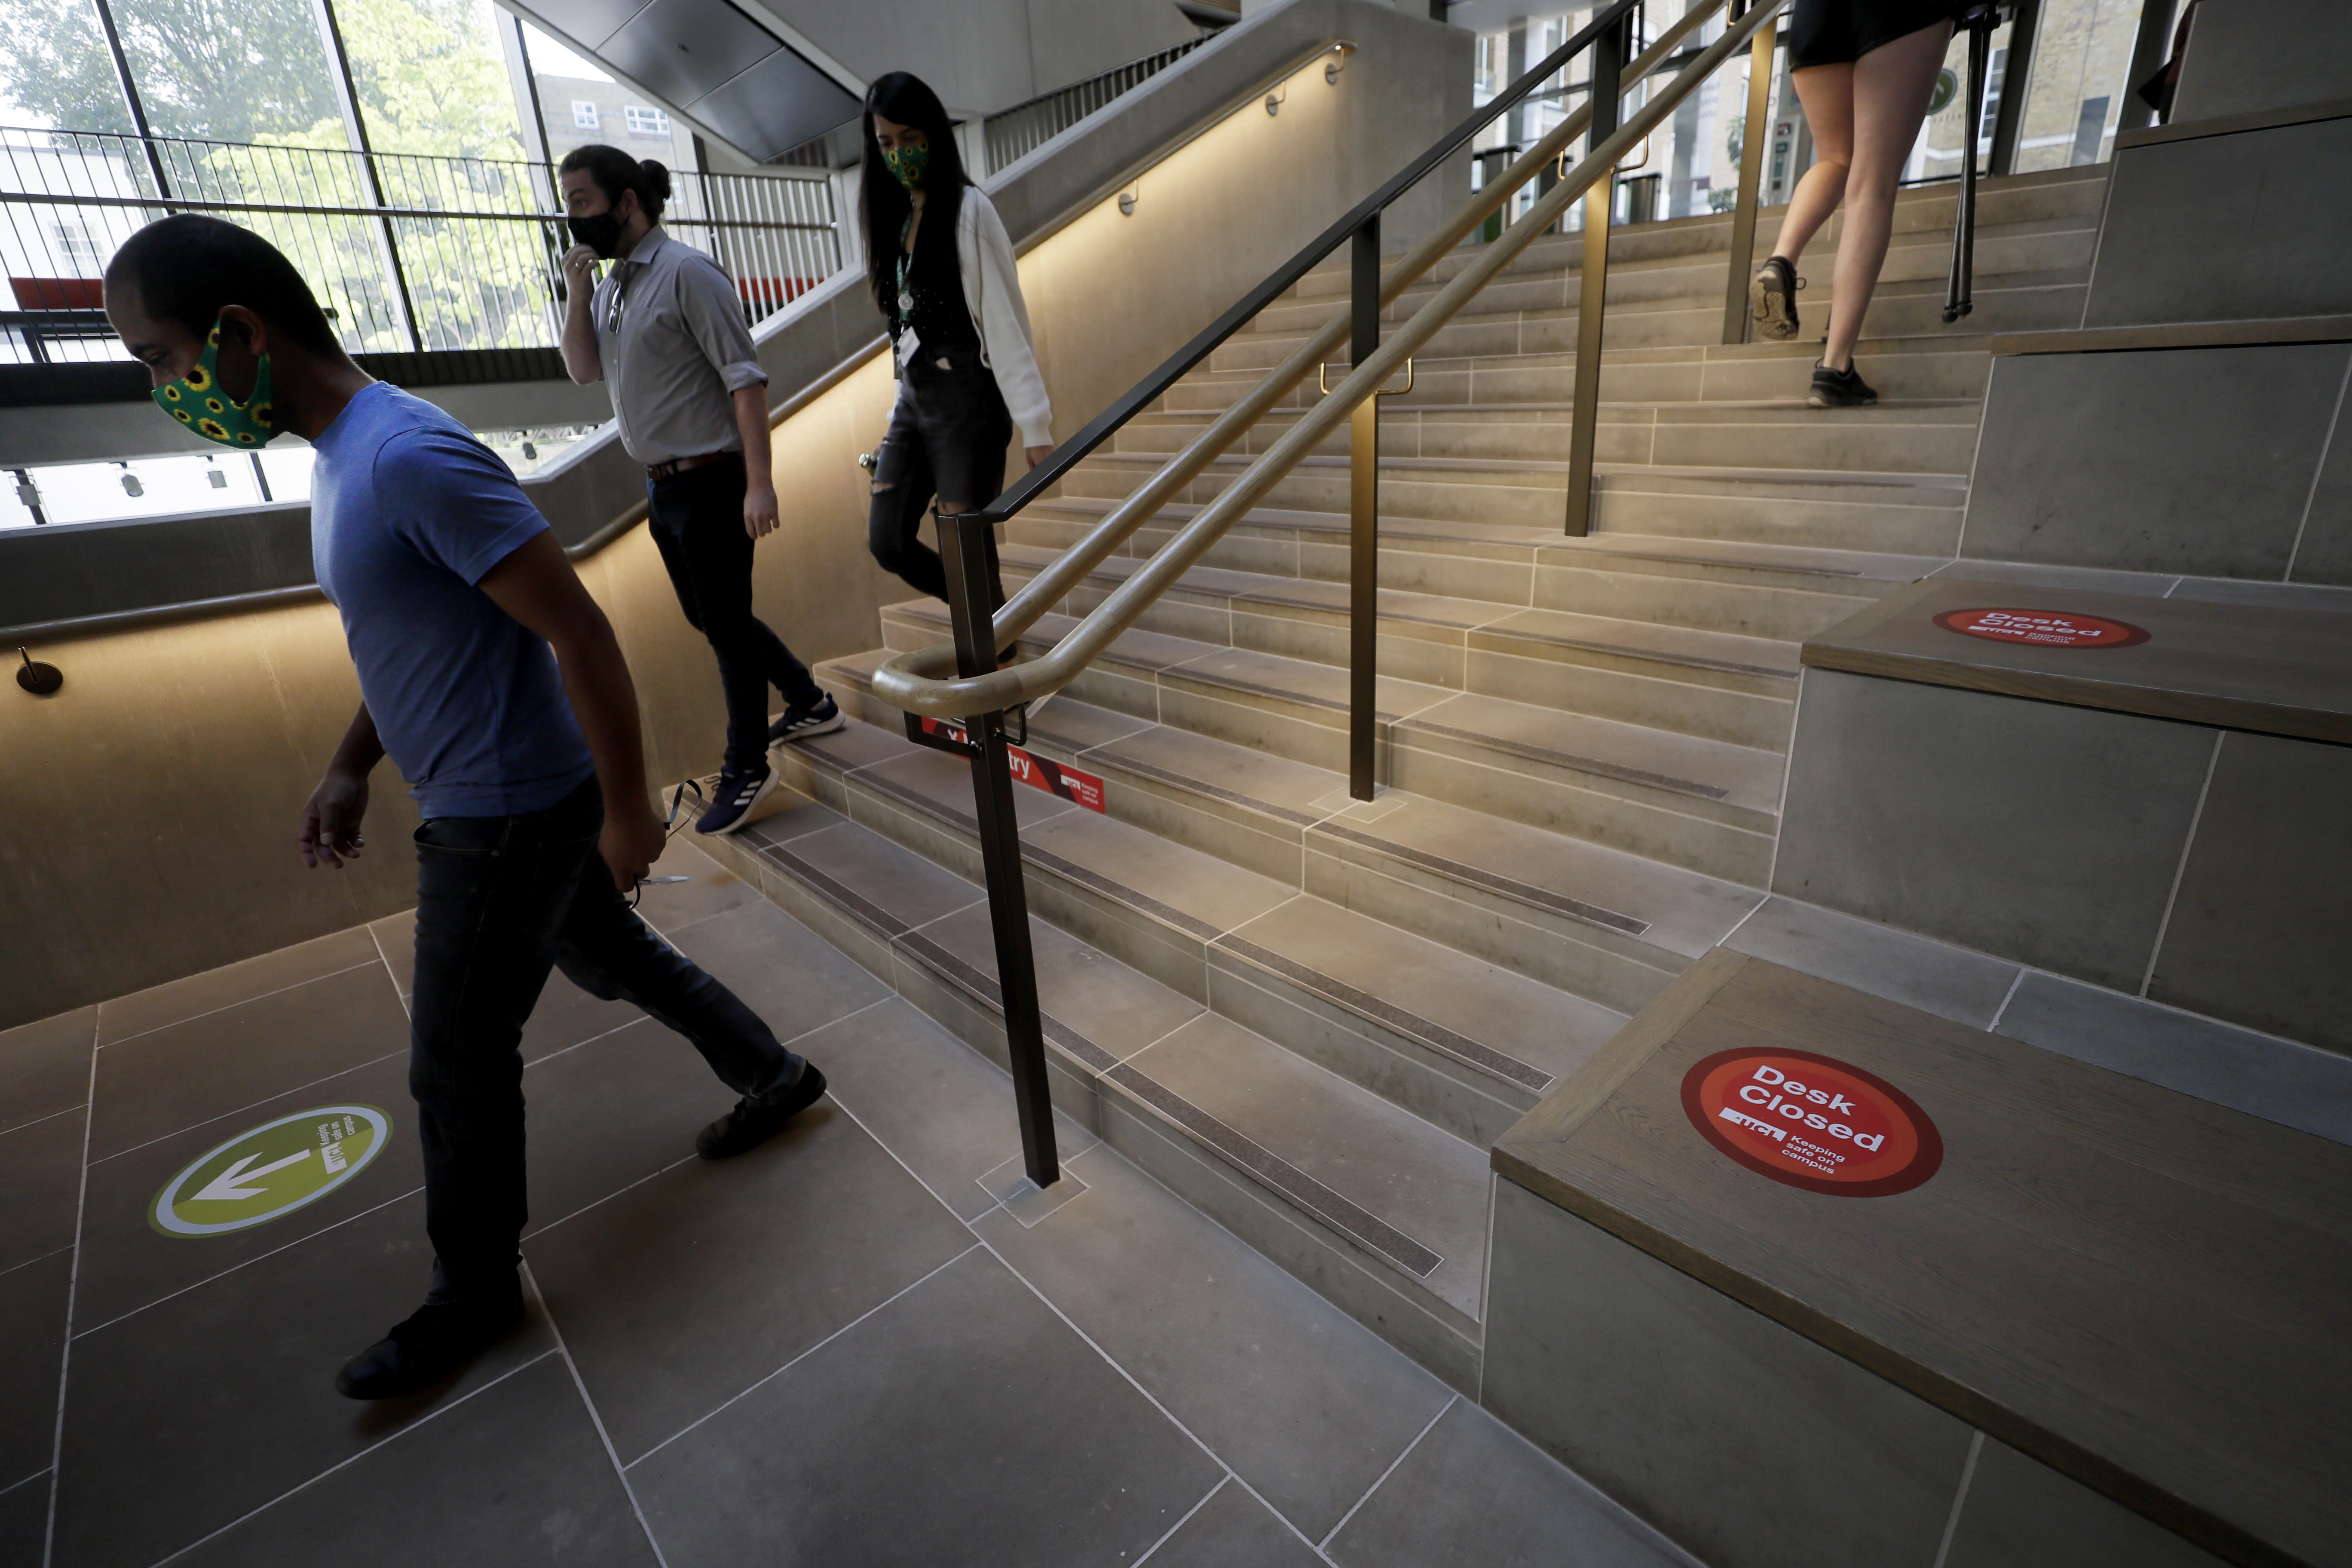 Arrows mark a one way walking system at UCL (University College London) in London, Thursday, Sept. 17, 2020. The university is preparing its return to campus COVID-19 measures. (AP Photo/Kirsty Wigglesworth)